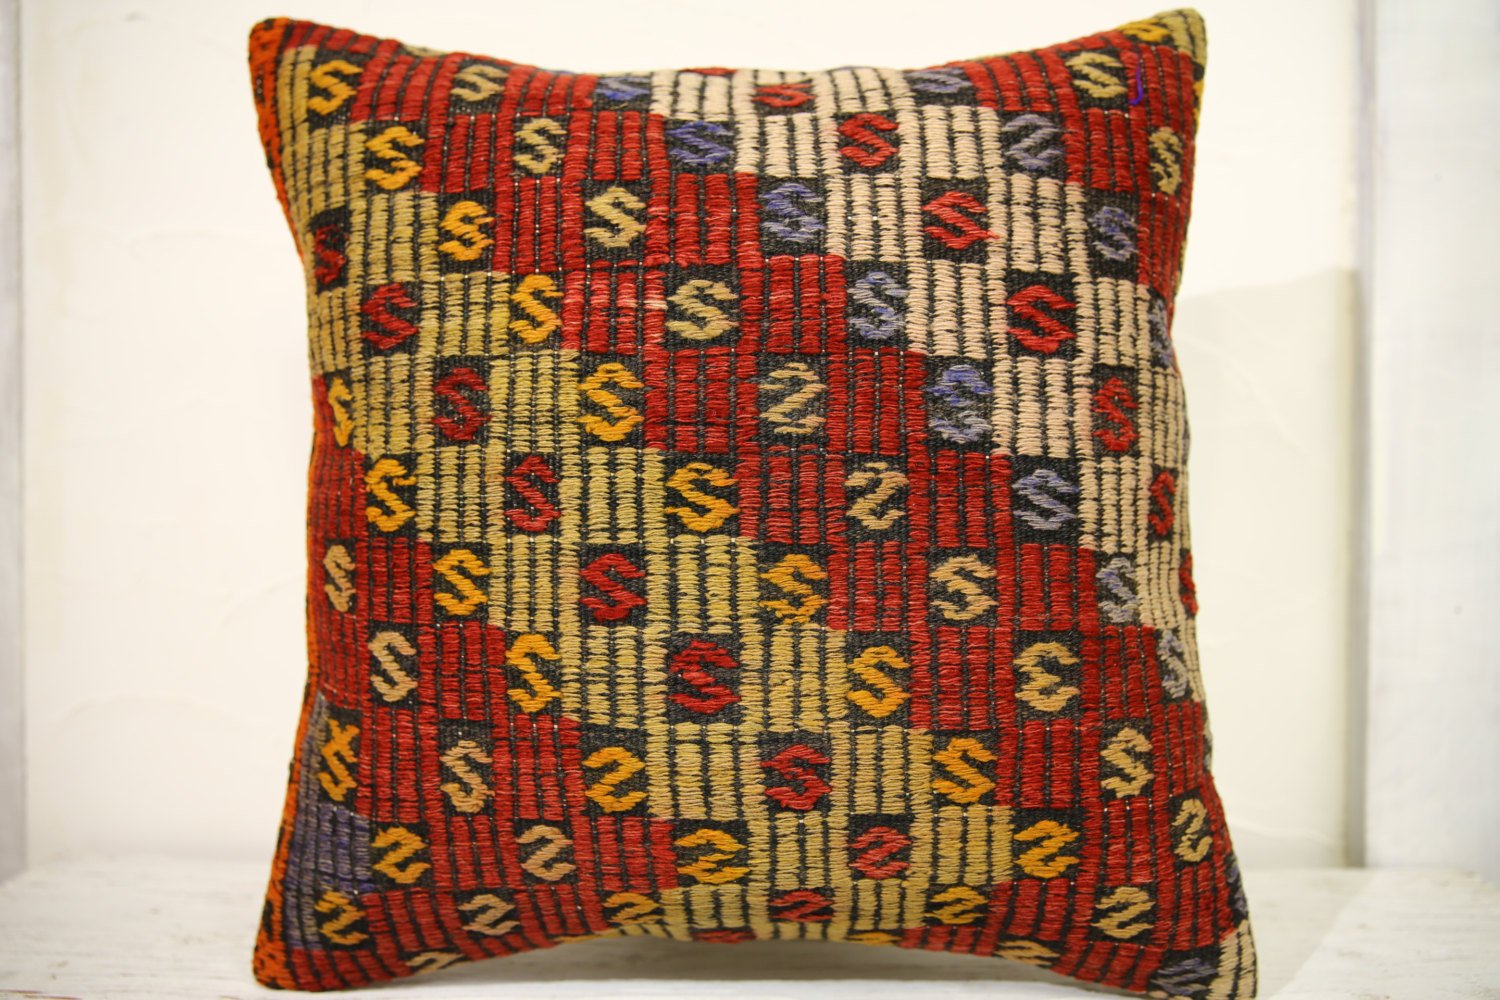 Kilim Pillows | 20x20 | Decorative Pillows | 686 | Accent Pillows, Kilim cushion